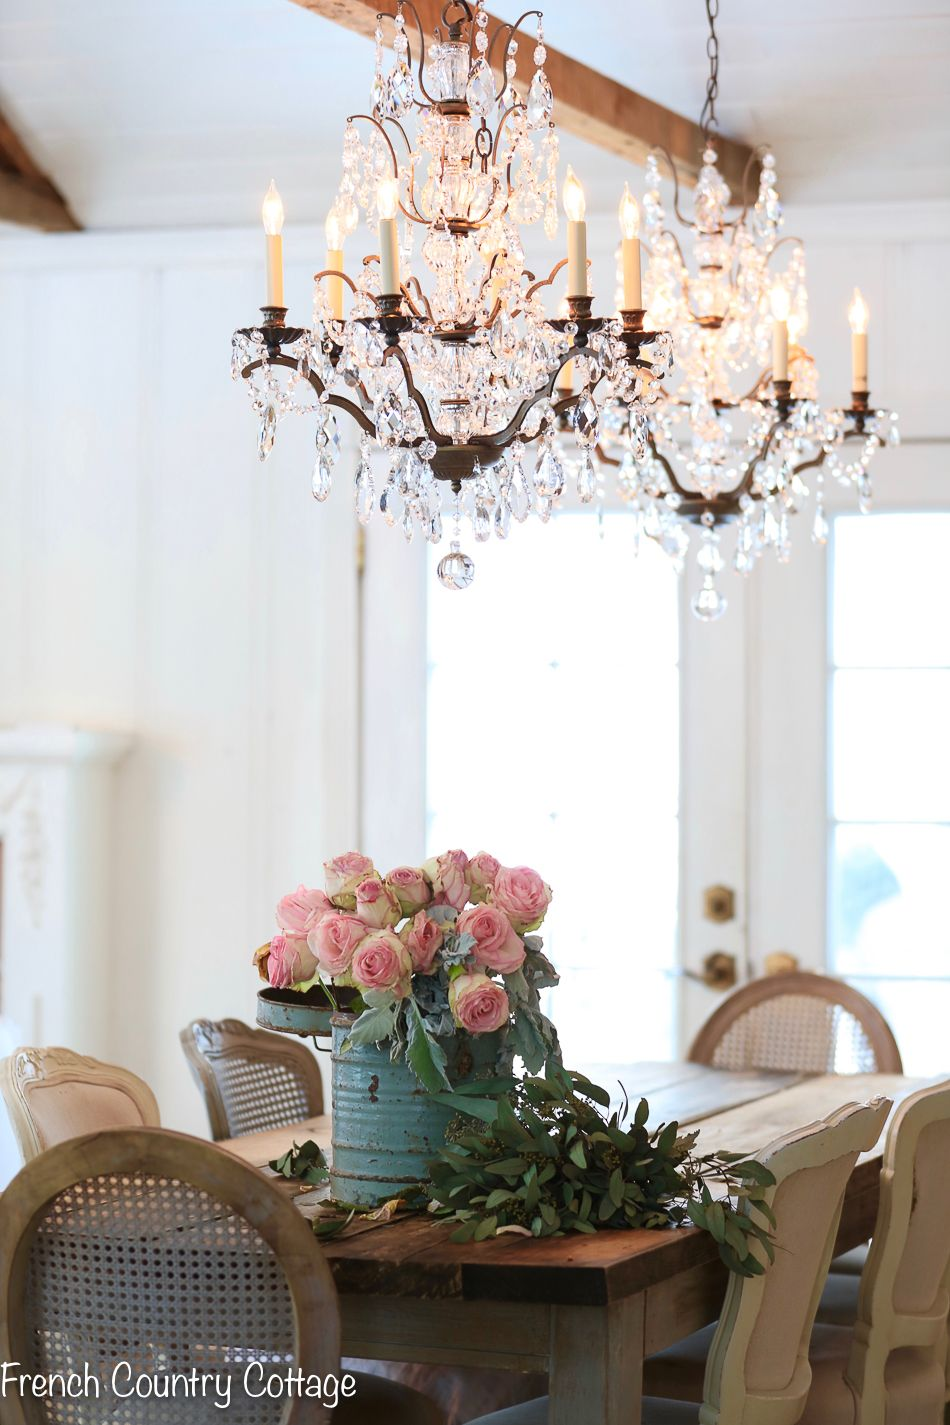 How A Simple Change Can Bring Fresh Look French Country Cottage Making Small Changes In Your Dining Room And Home Make Whole New